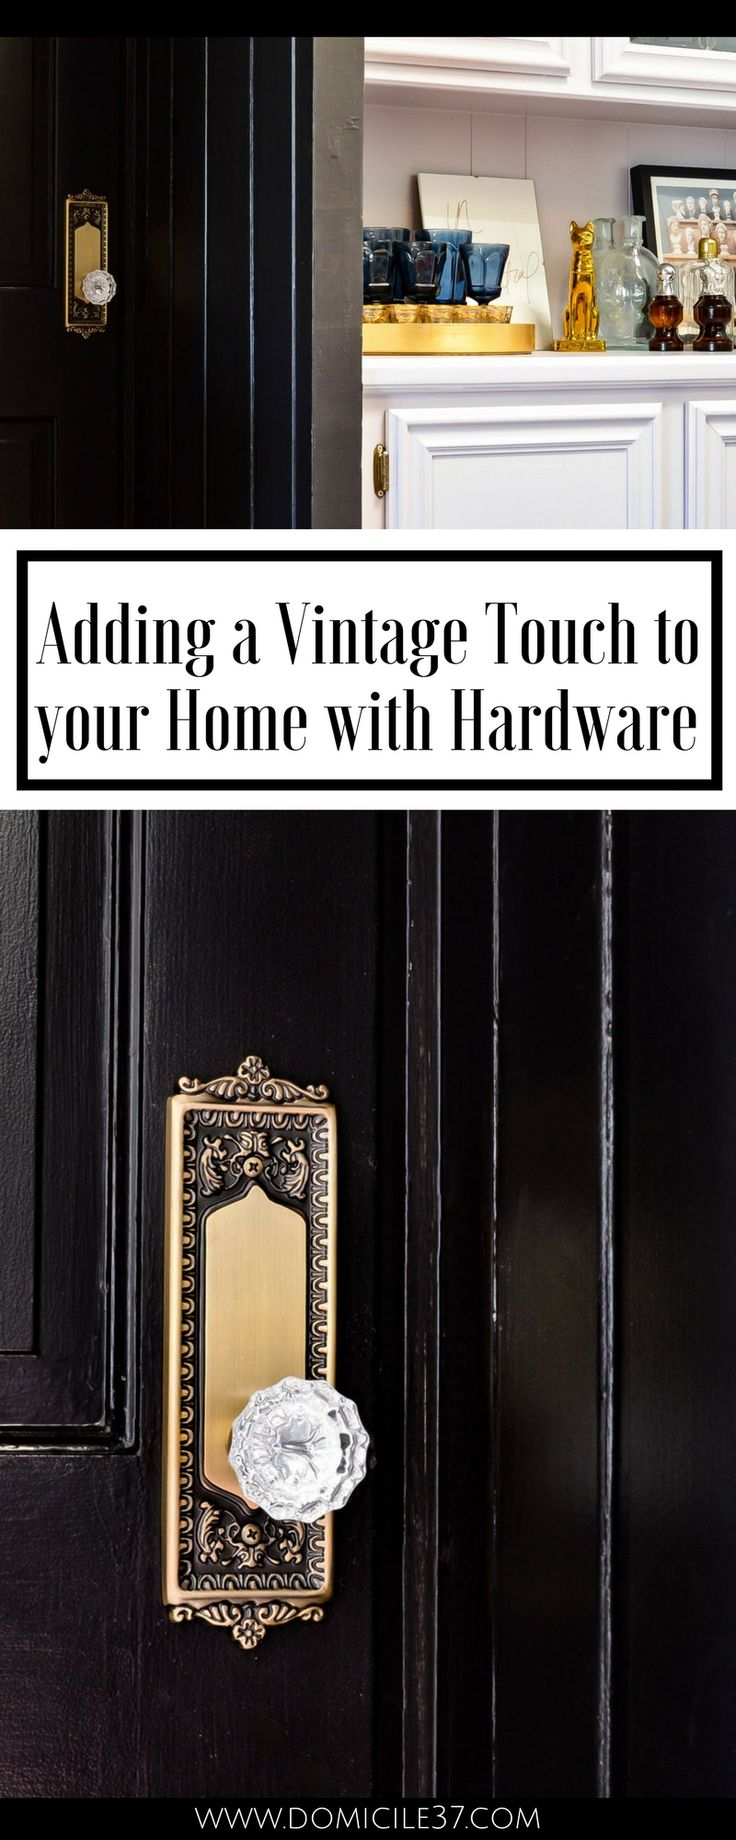 How to add a vintage charm into your home | vintage door knobs | Black doors with vintage door knobs | Moody homes with vintage touches | Vintage eclectic decor | Nostalgic Warehouse | Wayfair door knobs